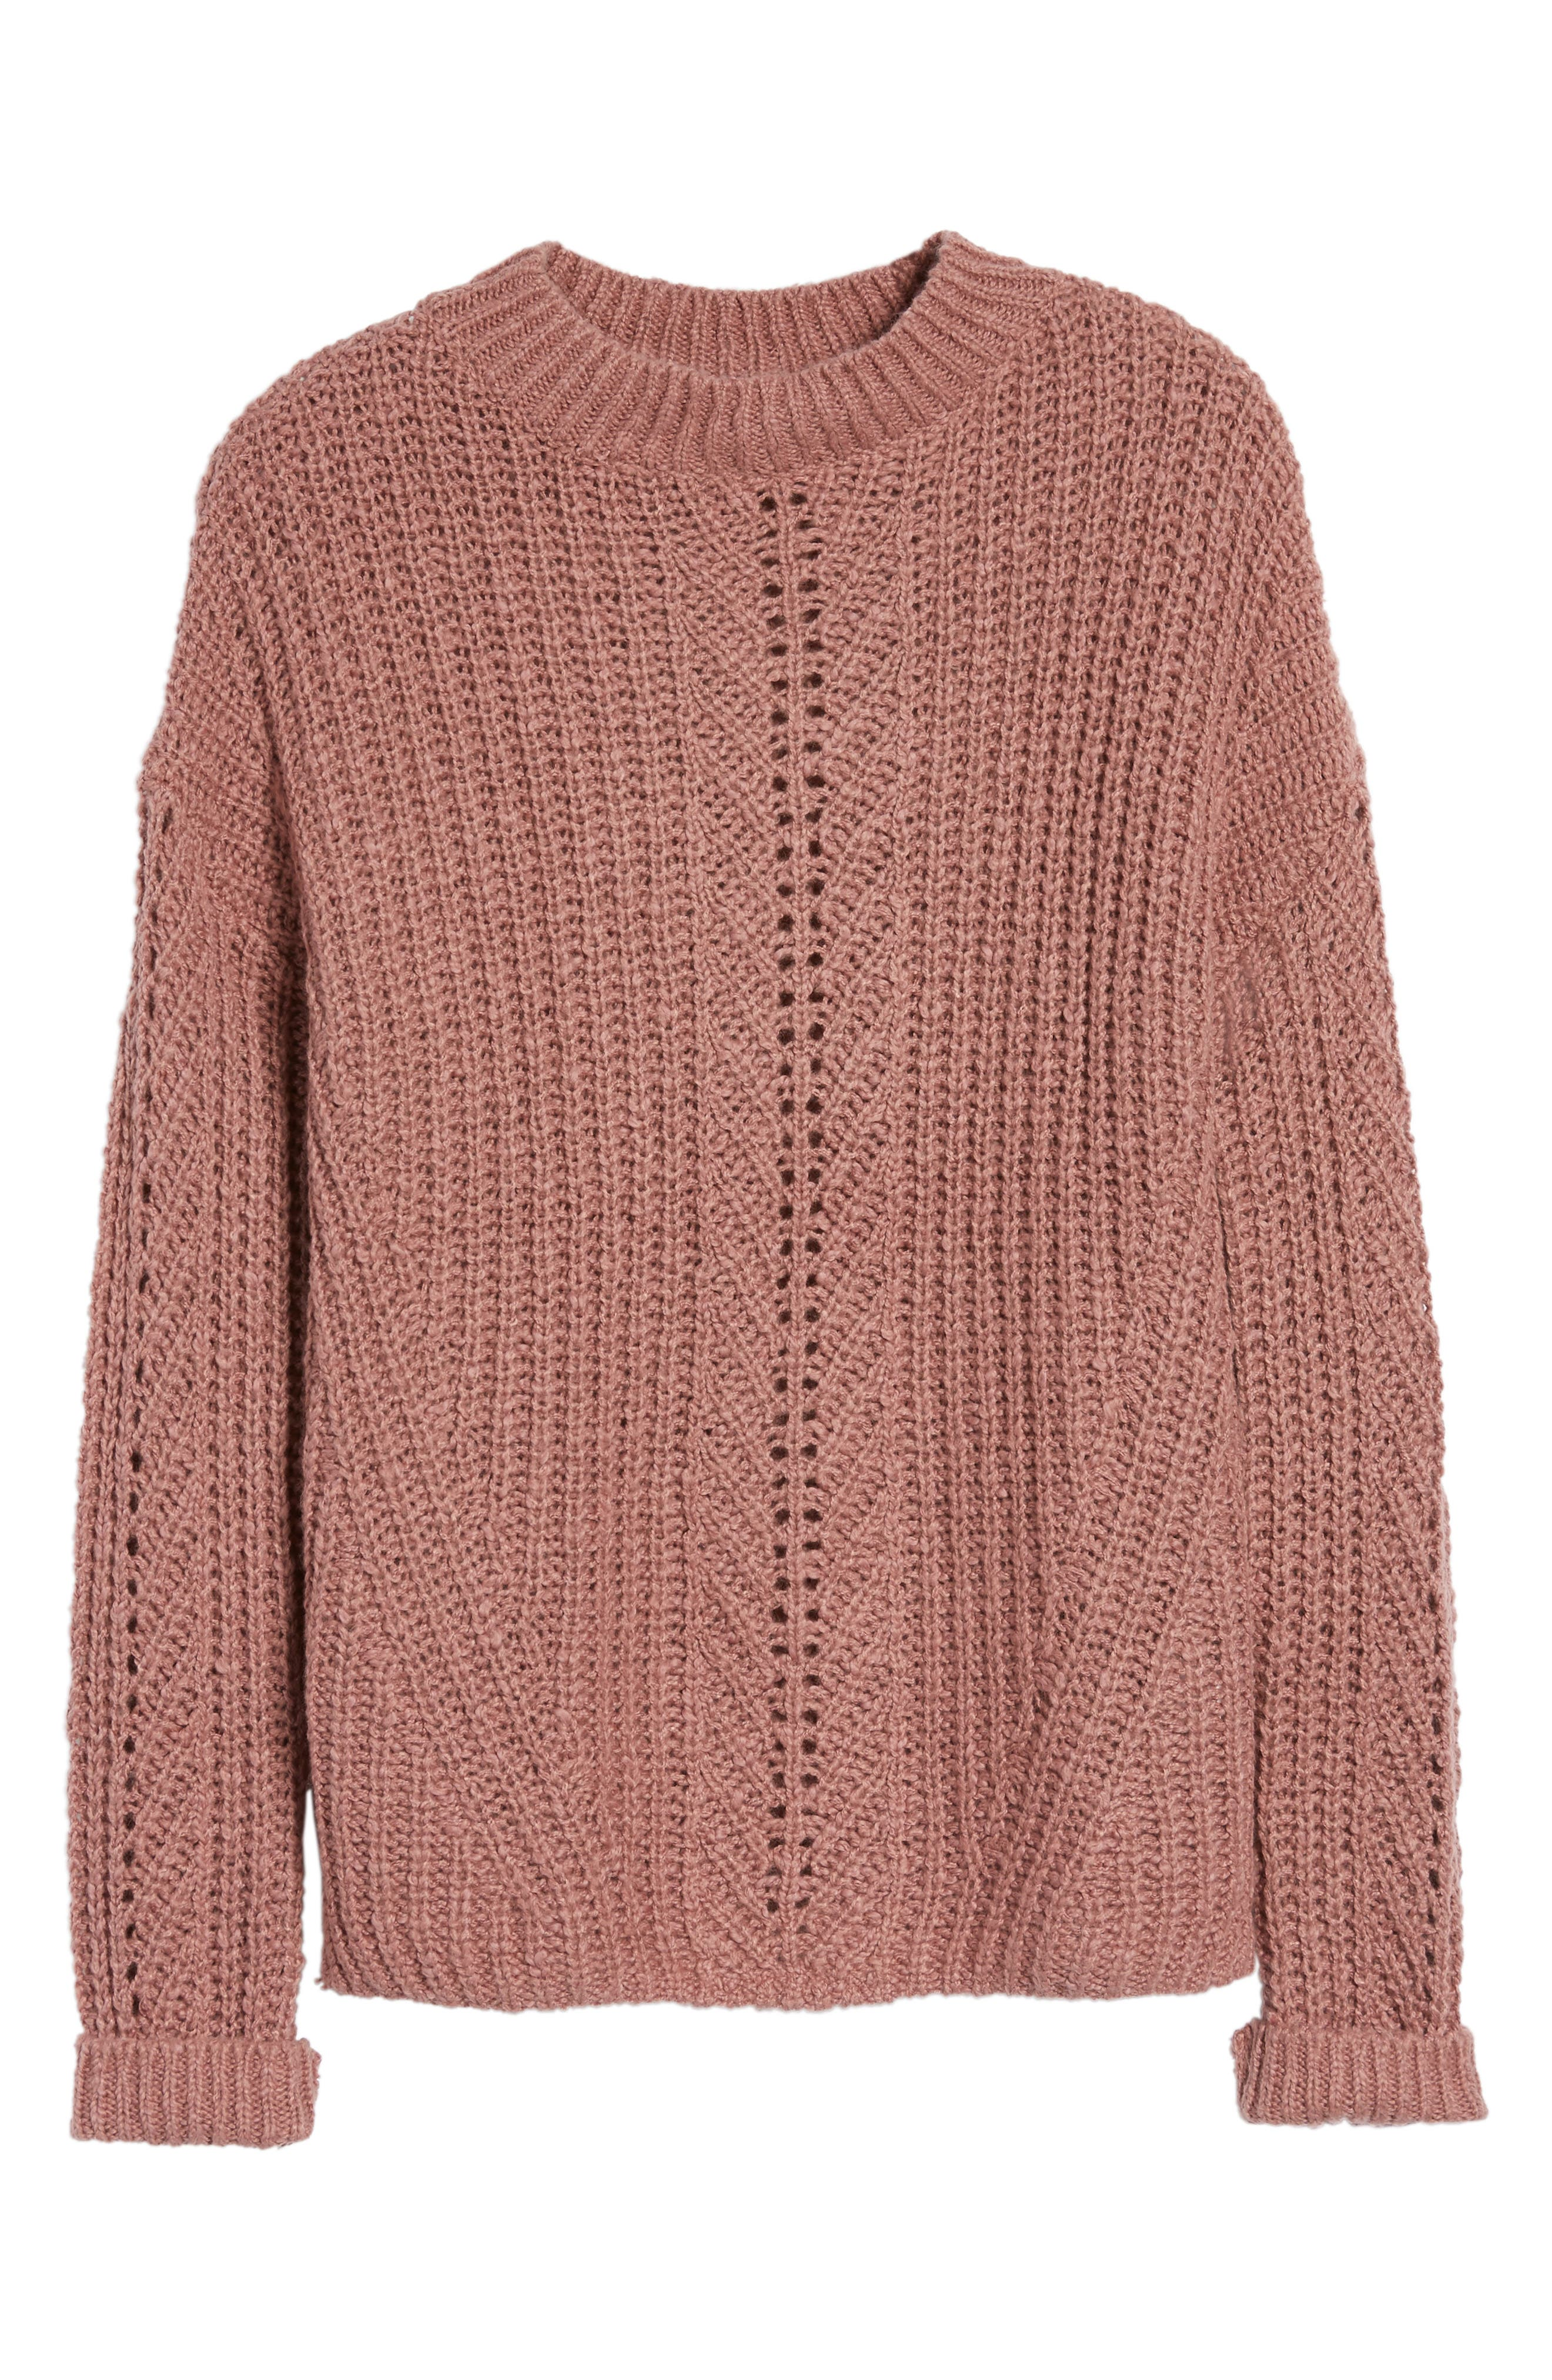 Open Stitch Sweater,                             Main thumbnail 1, color,                             Dusty Pink